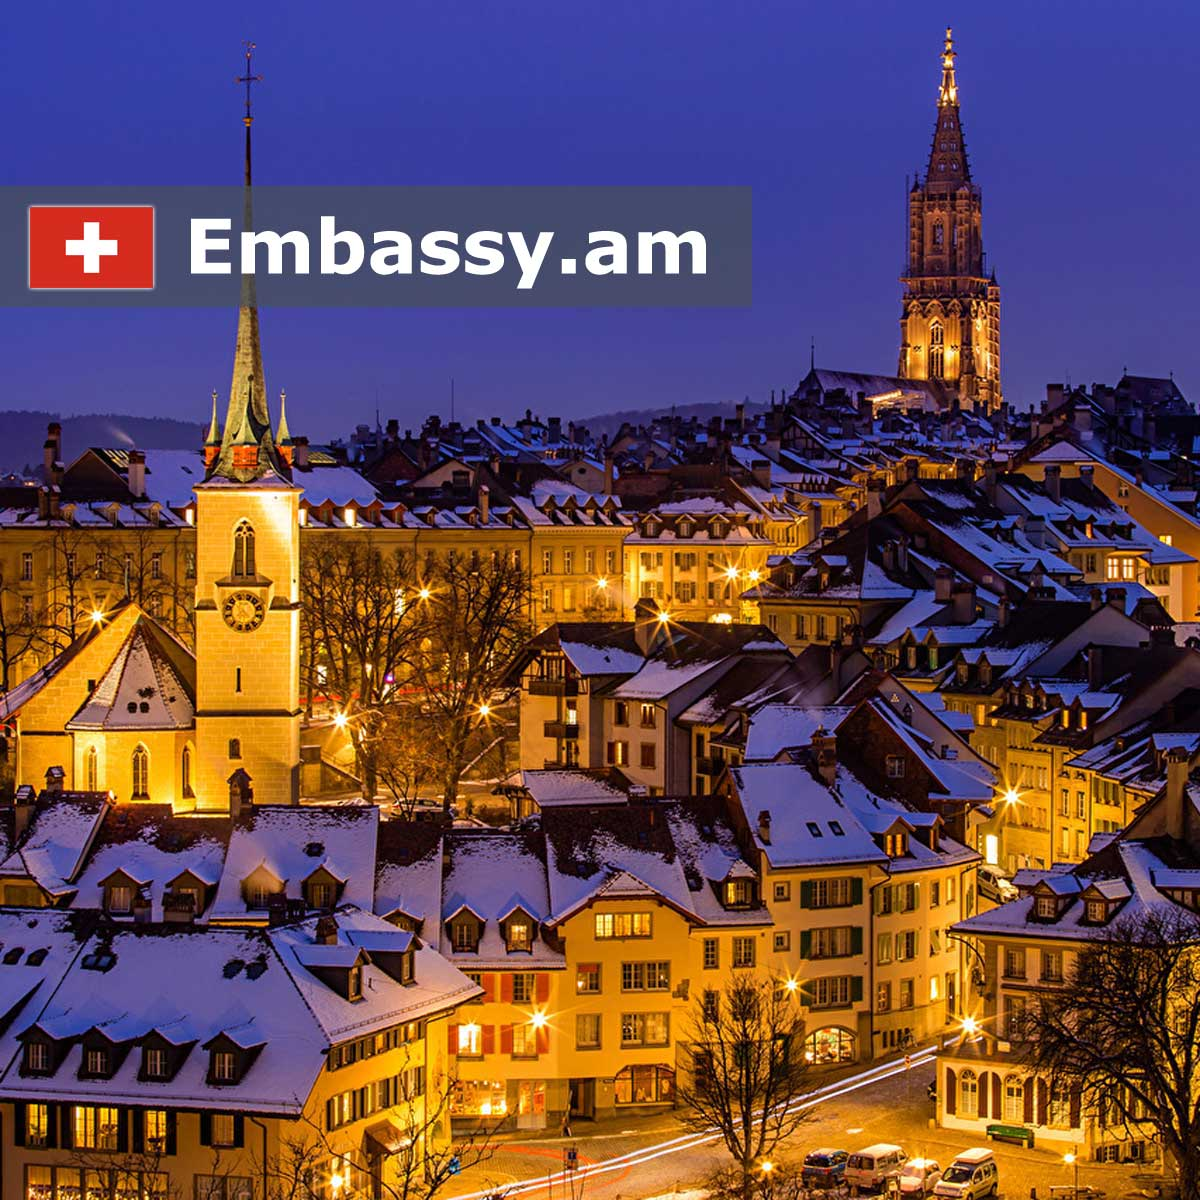 Bern - Hotels in Switzerland - Embassy.am